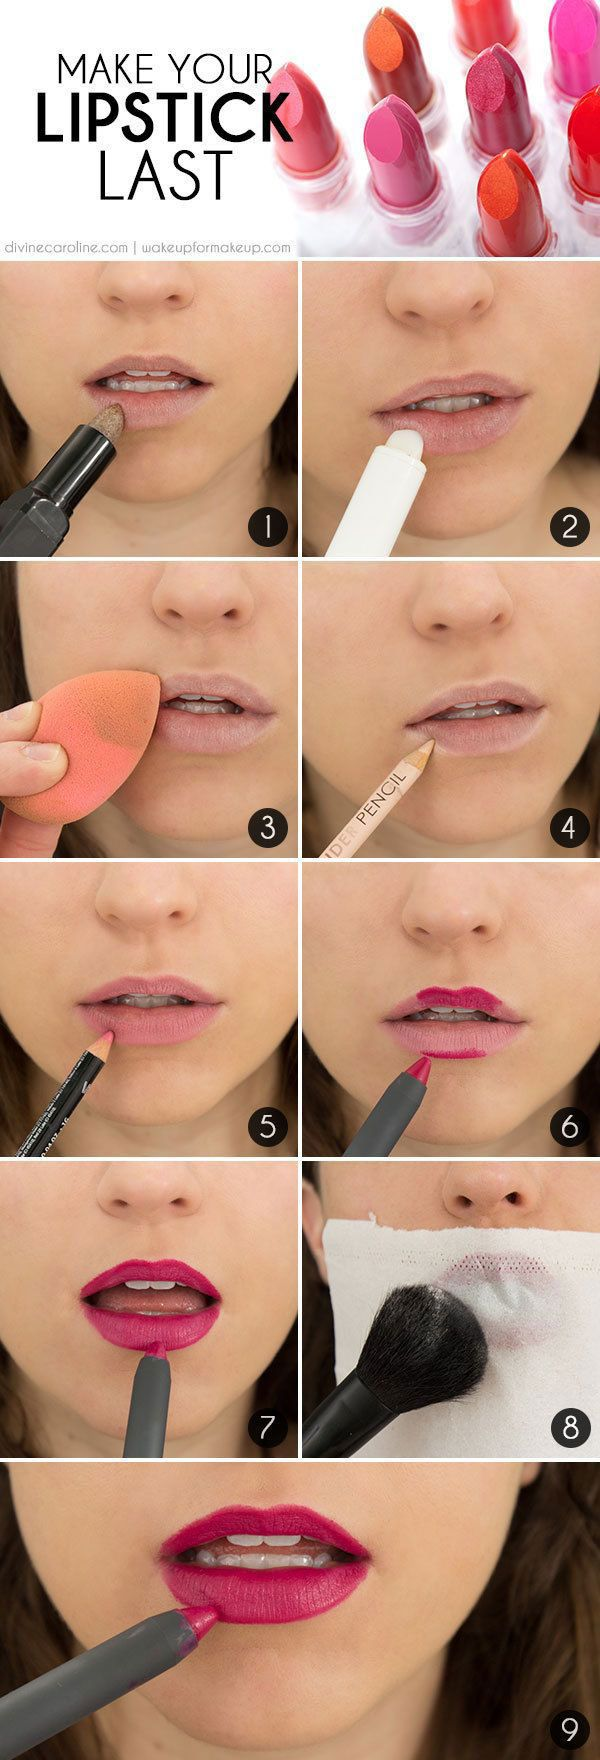 30 Amazing Beauty Tricks For Prom That Will Make The Night So Much Easier